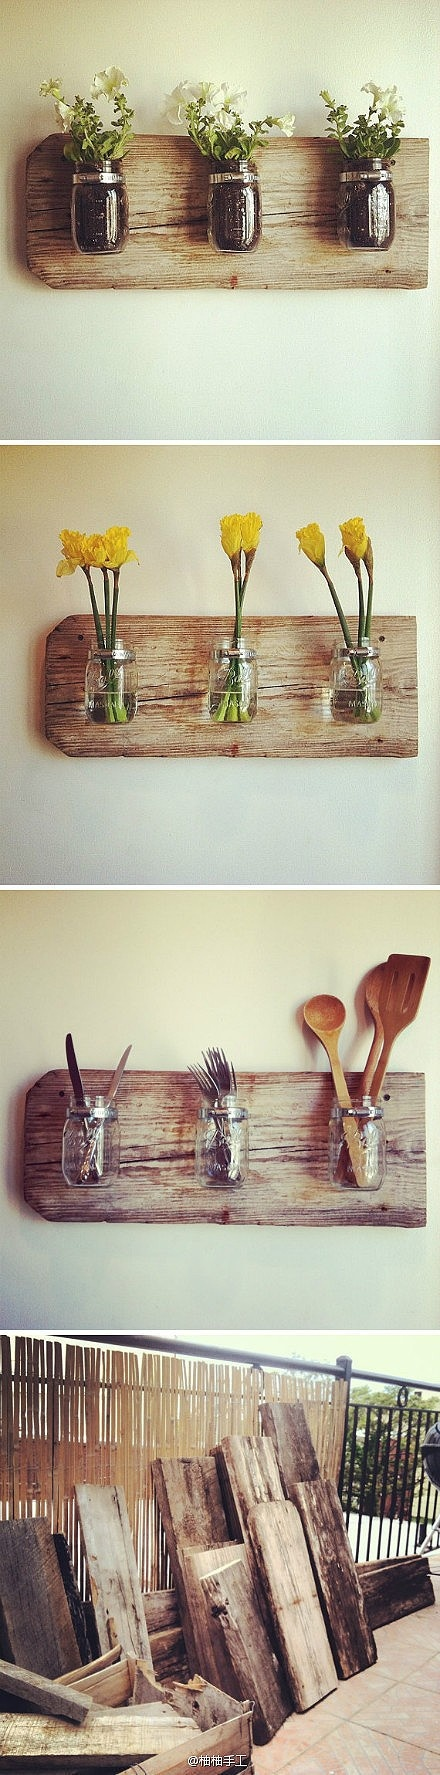 Use HOSE CLAMP to secure Mason Jars to scrap wood - so cute and versatile!